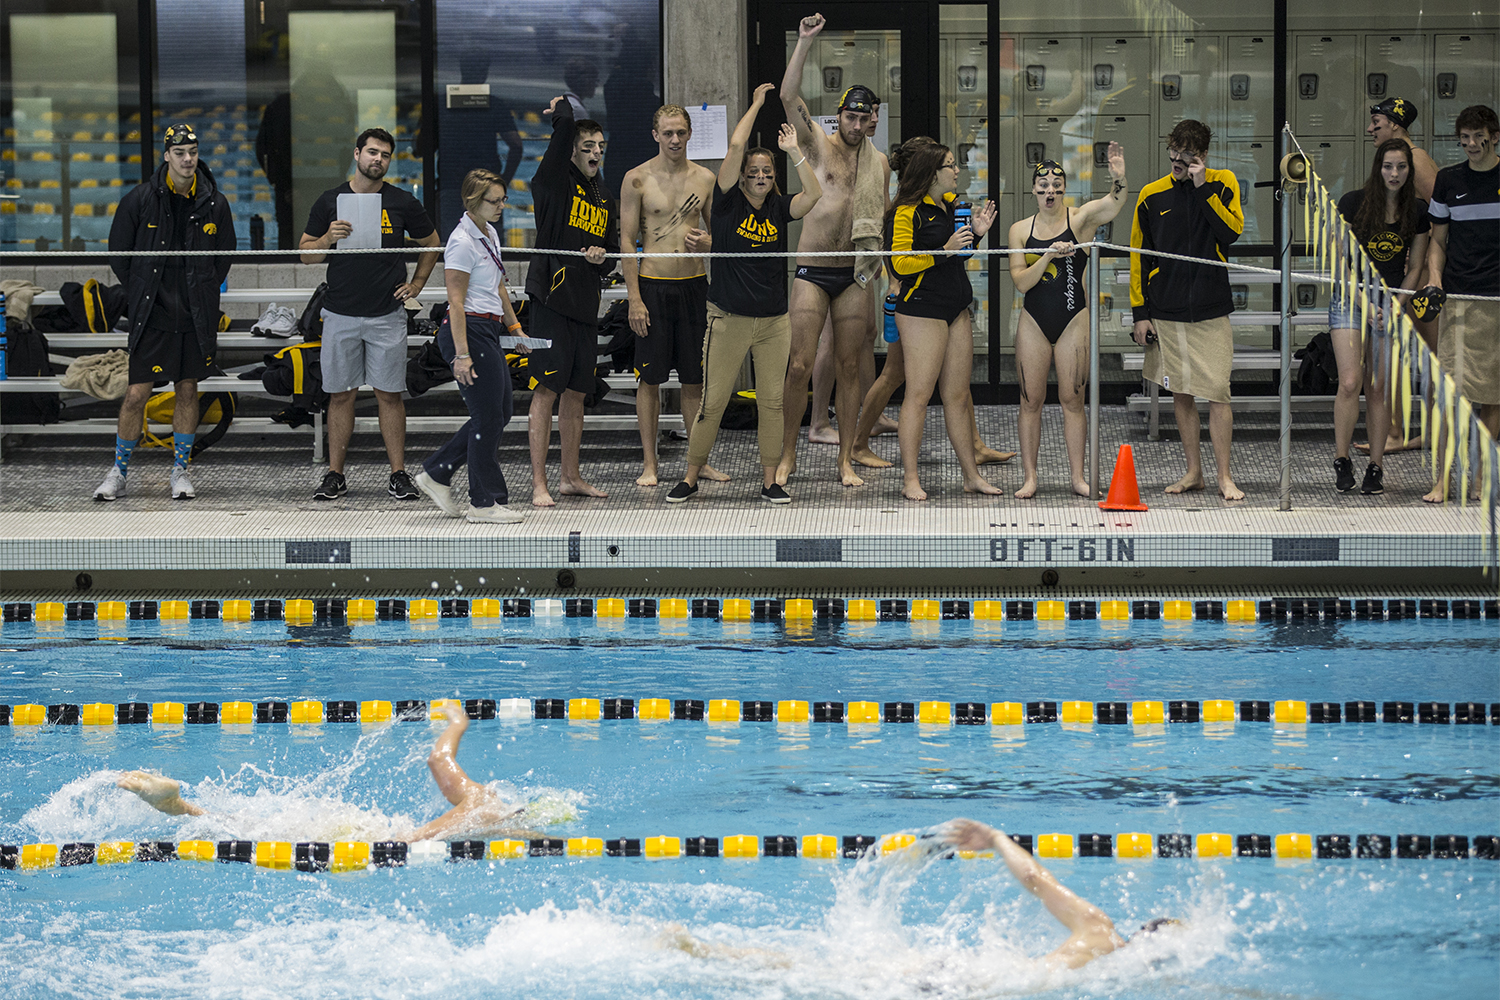 The+Iowa+swim+team+cheers+on+competitors+during+the+Iowa+Swimming+and+Diving+Intrasquad+Meet+at+the+Campus+Recreation+and+Wellness+Center+on+Saturday%2C+September+29%2C+2018.+